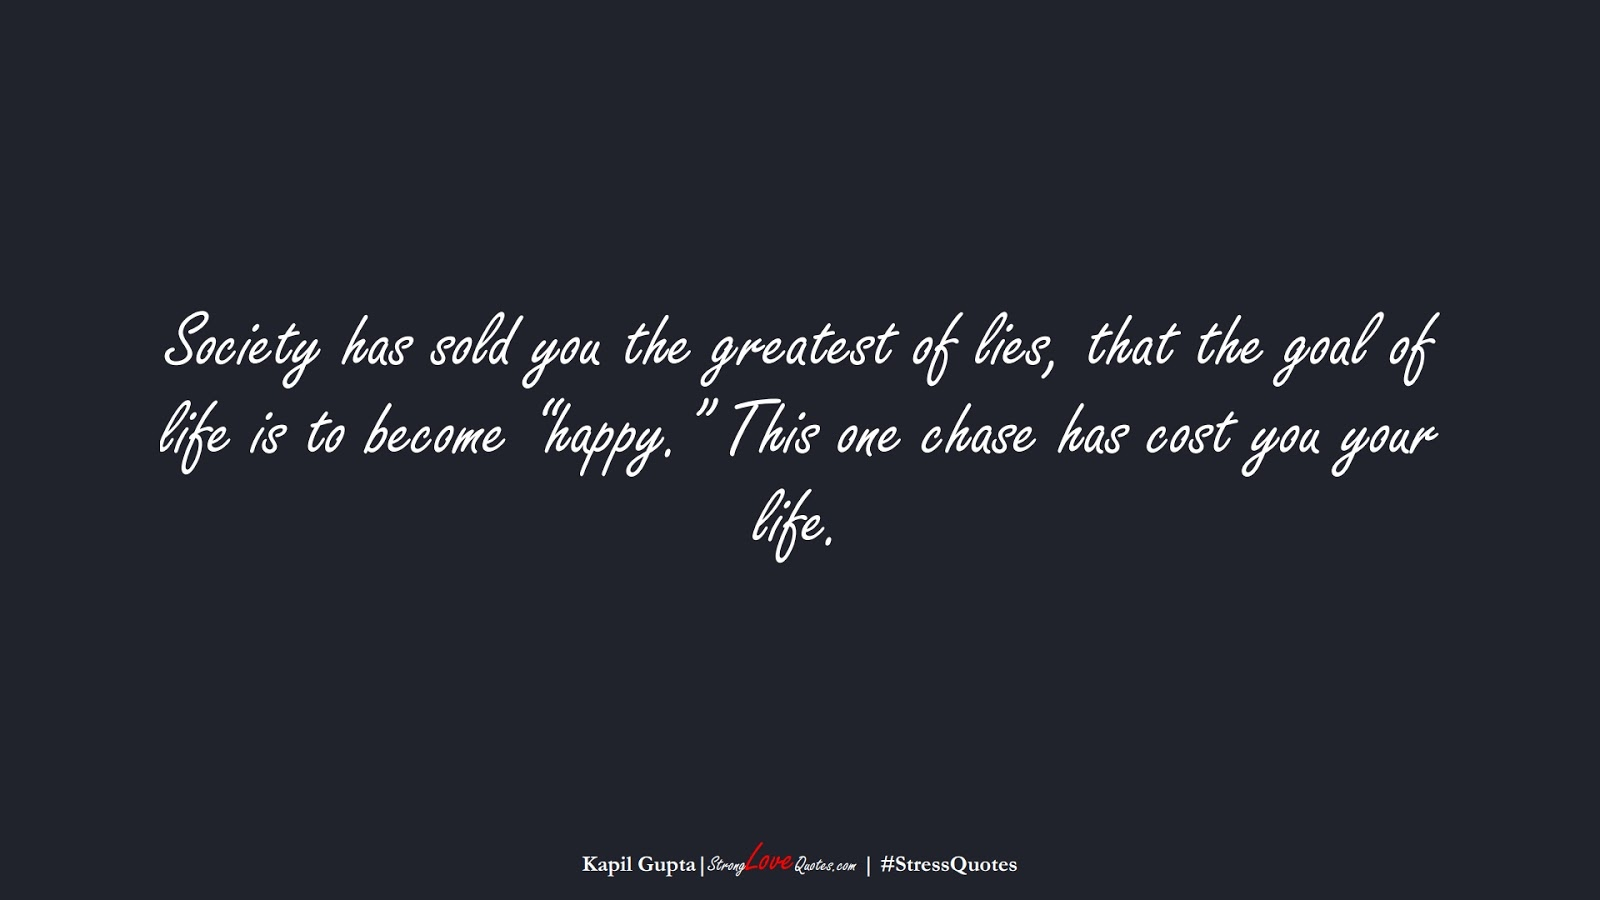 """Society has sold you the greatest of lies, that the goal of life is to become """"happy."""" This one chase has cost you your life. (Kapil Gupta);  #StressQuotes"""